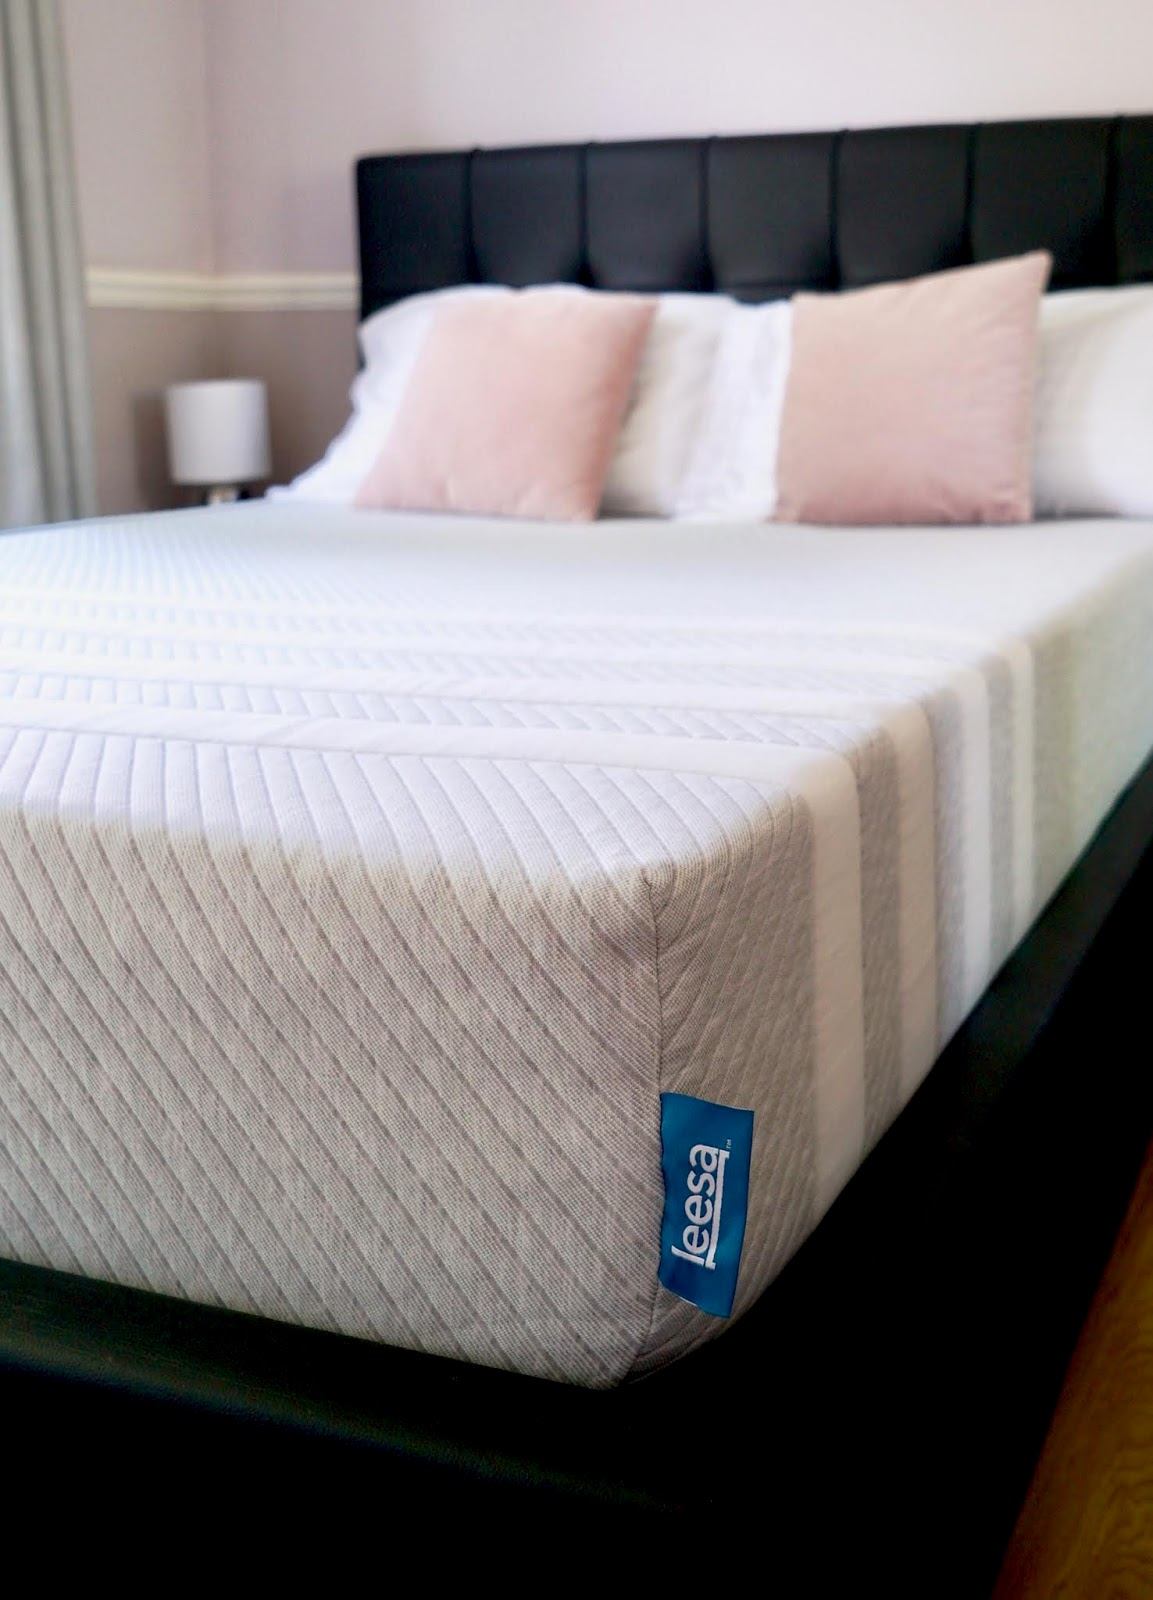 leesa mattress review and trial, good night sleep, photos.